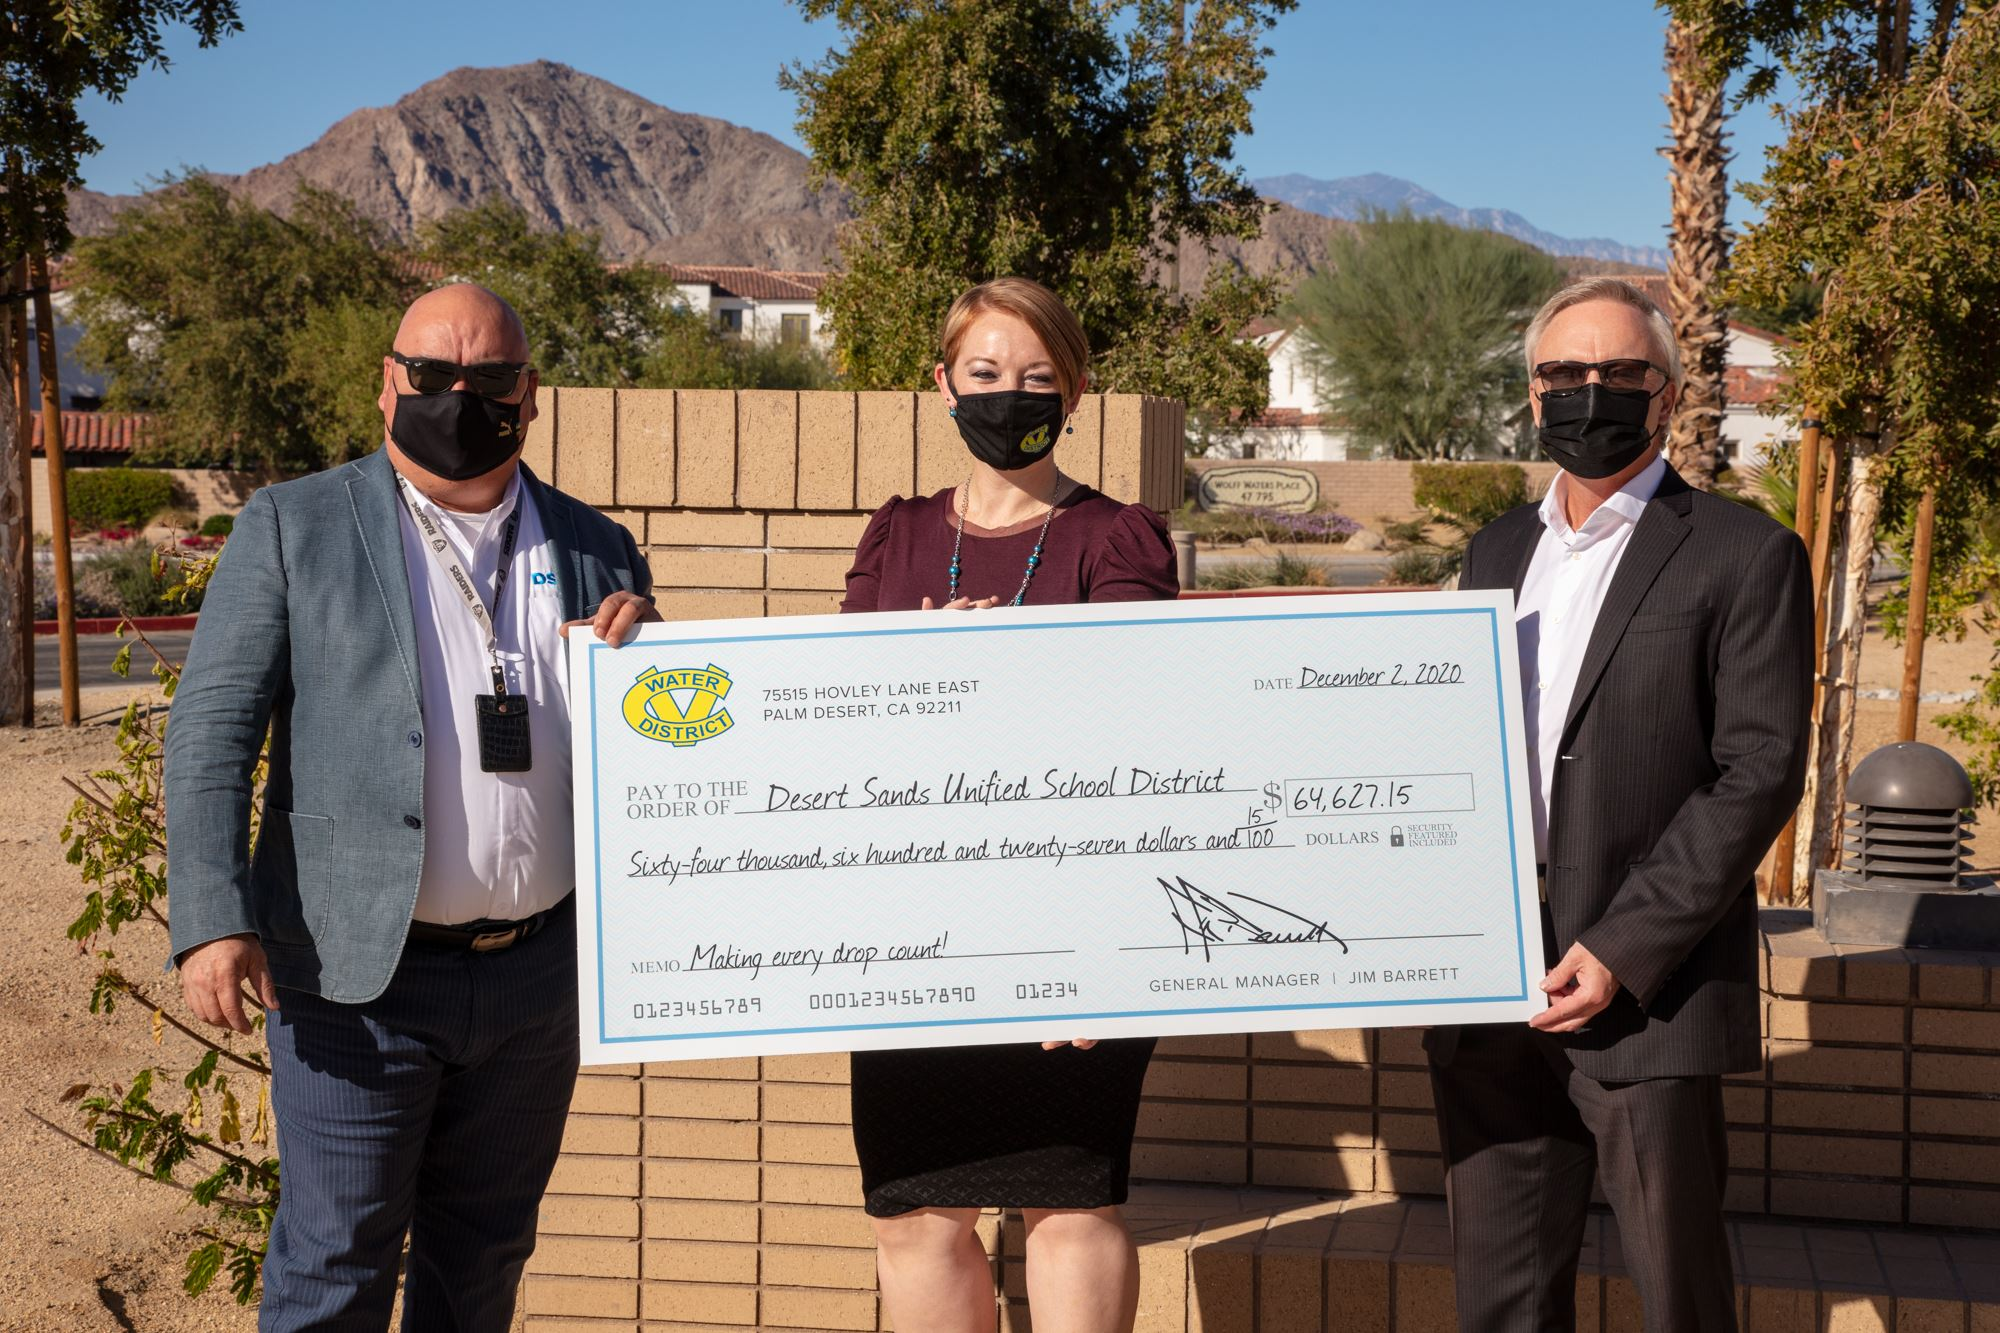 Conservation Rebate Check to Desert Sands Unified School District